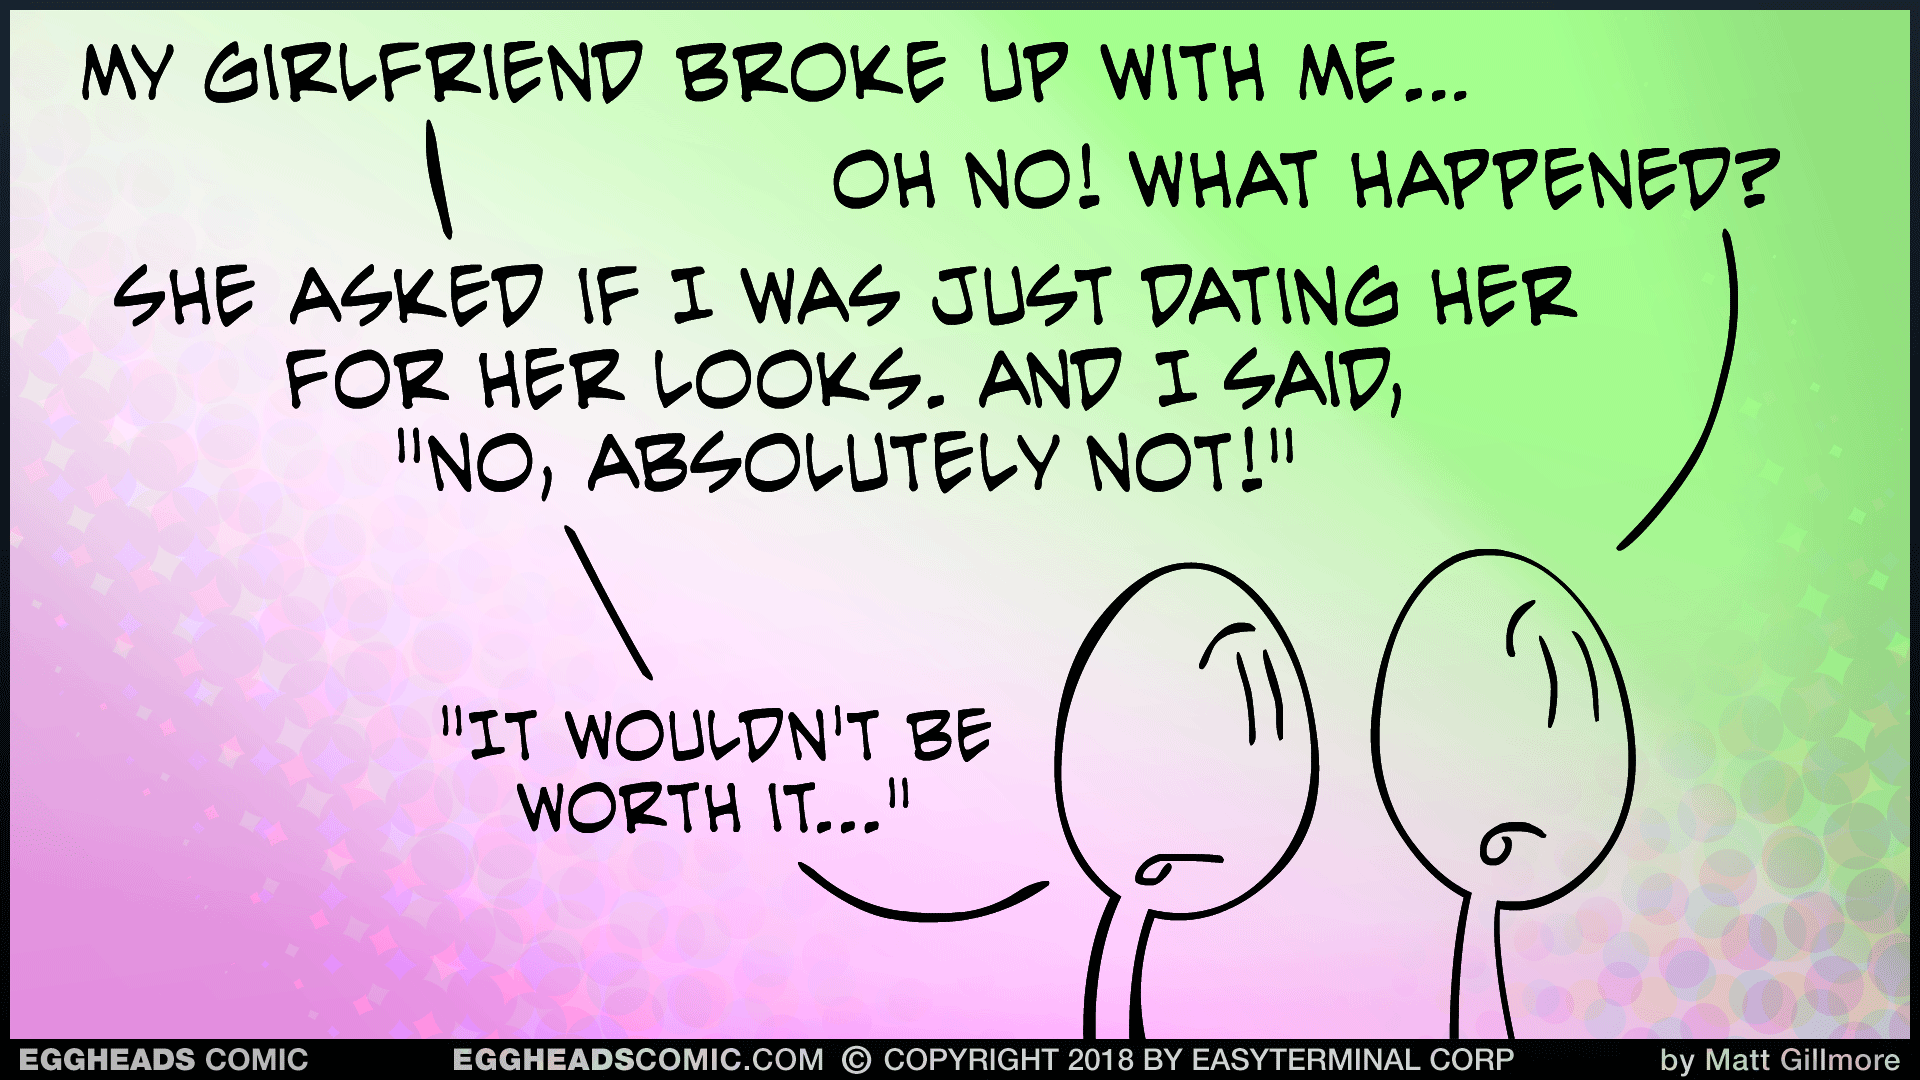 Webcomic Eggheads Comic Strip 134 Broke Up With Me